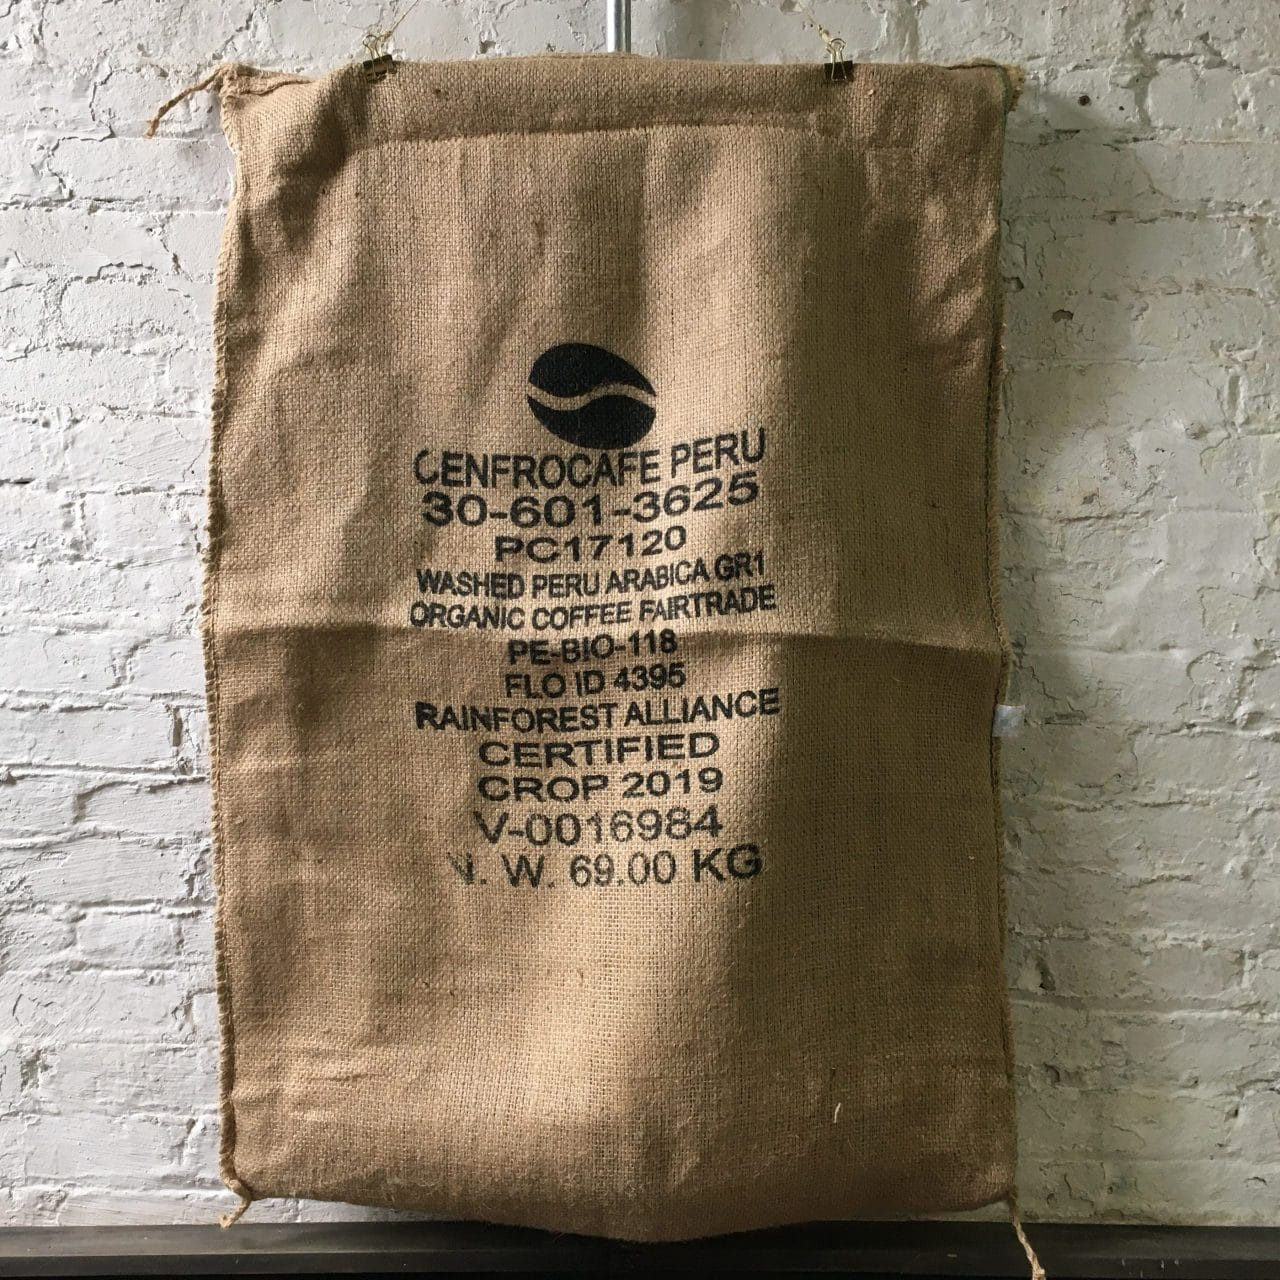 Peru Cenfrocafe Jute bag